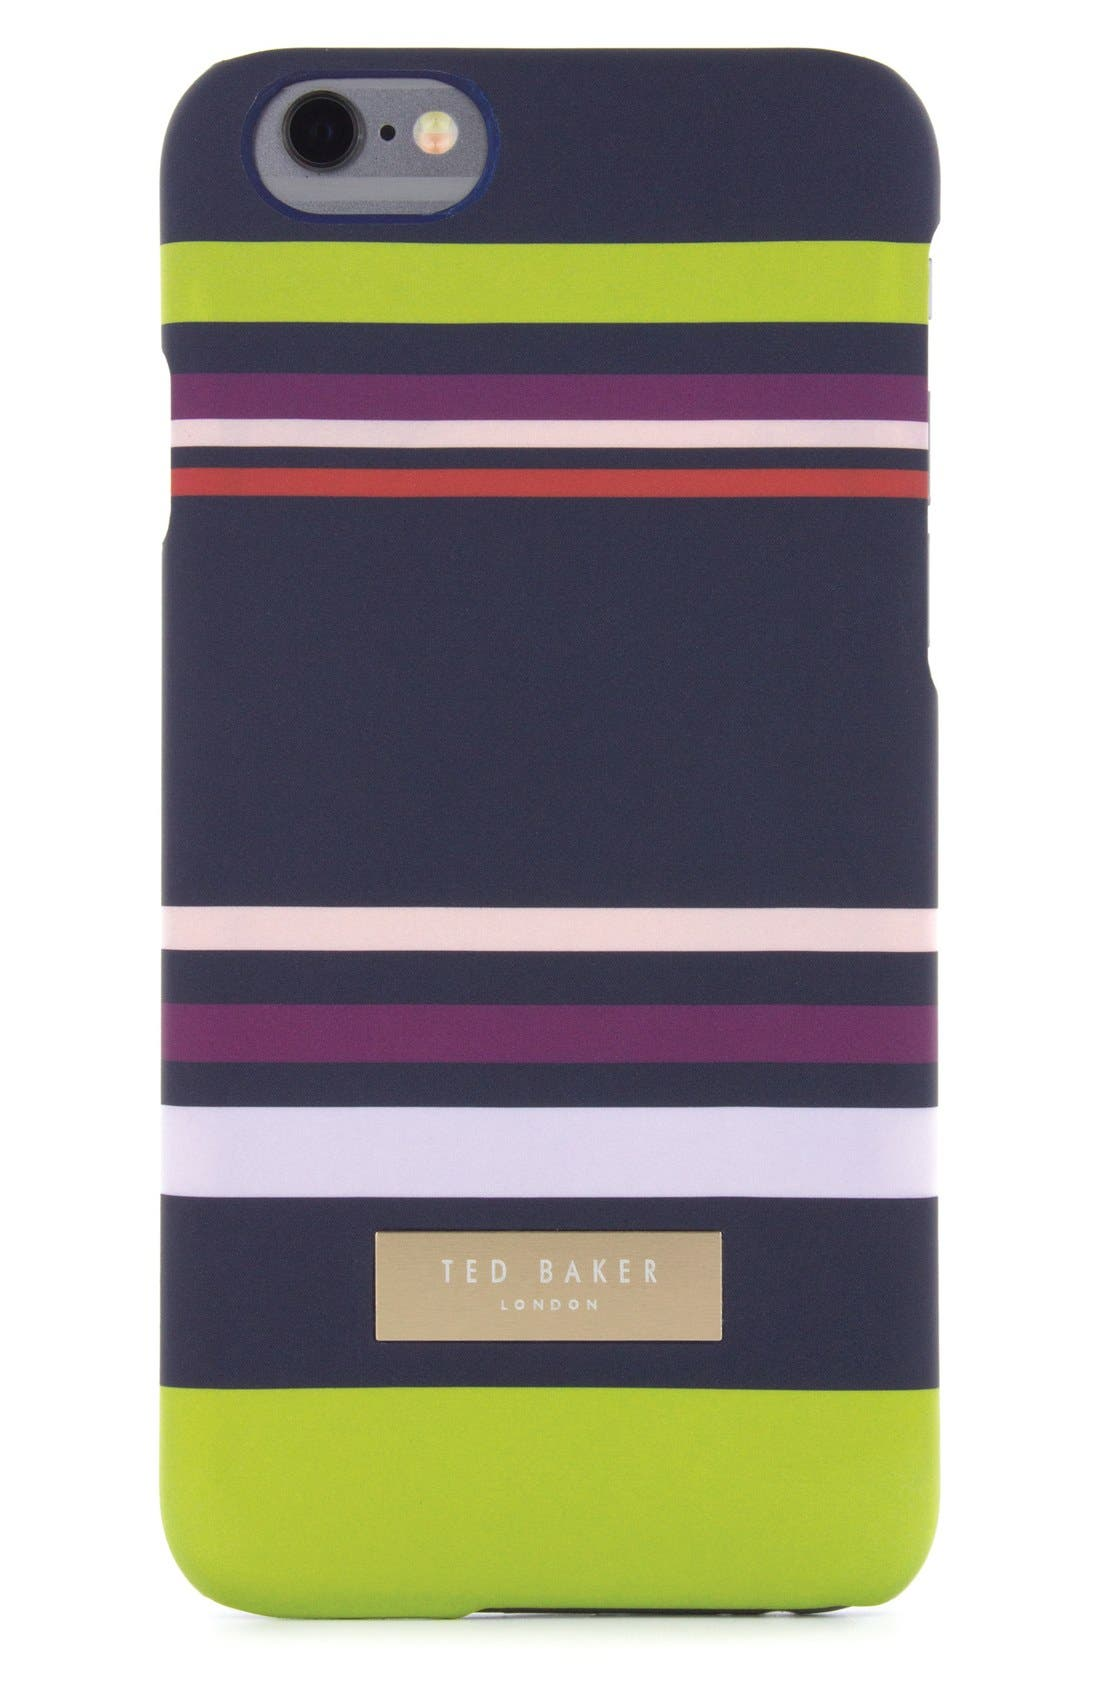 Main Image - Ted Baker London Stairway Stripe iPhone 6/6s/7/8 Case